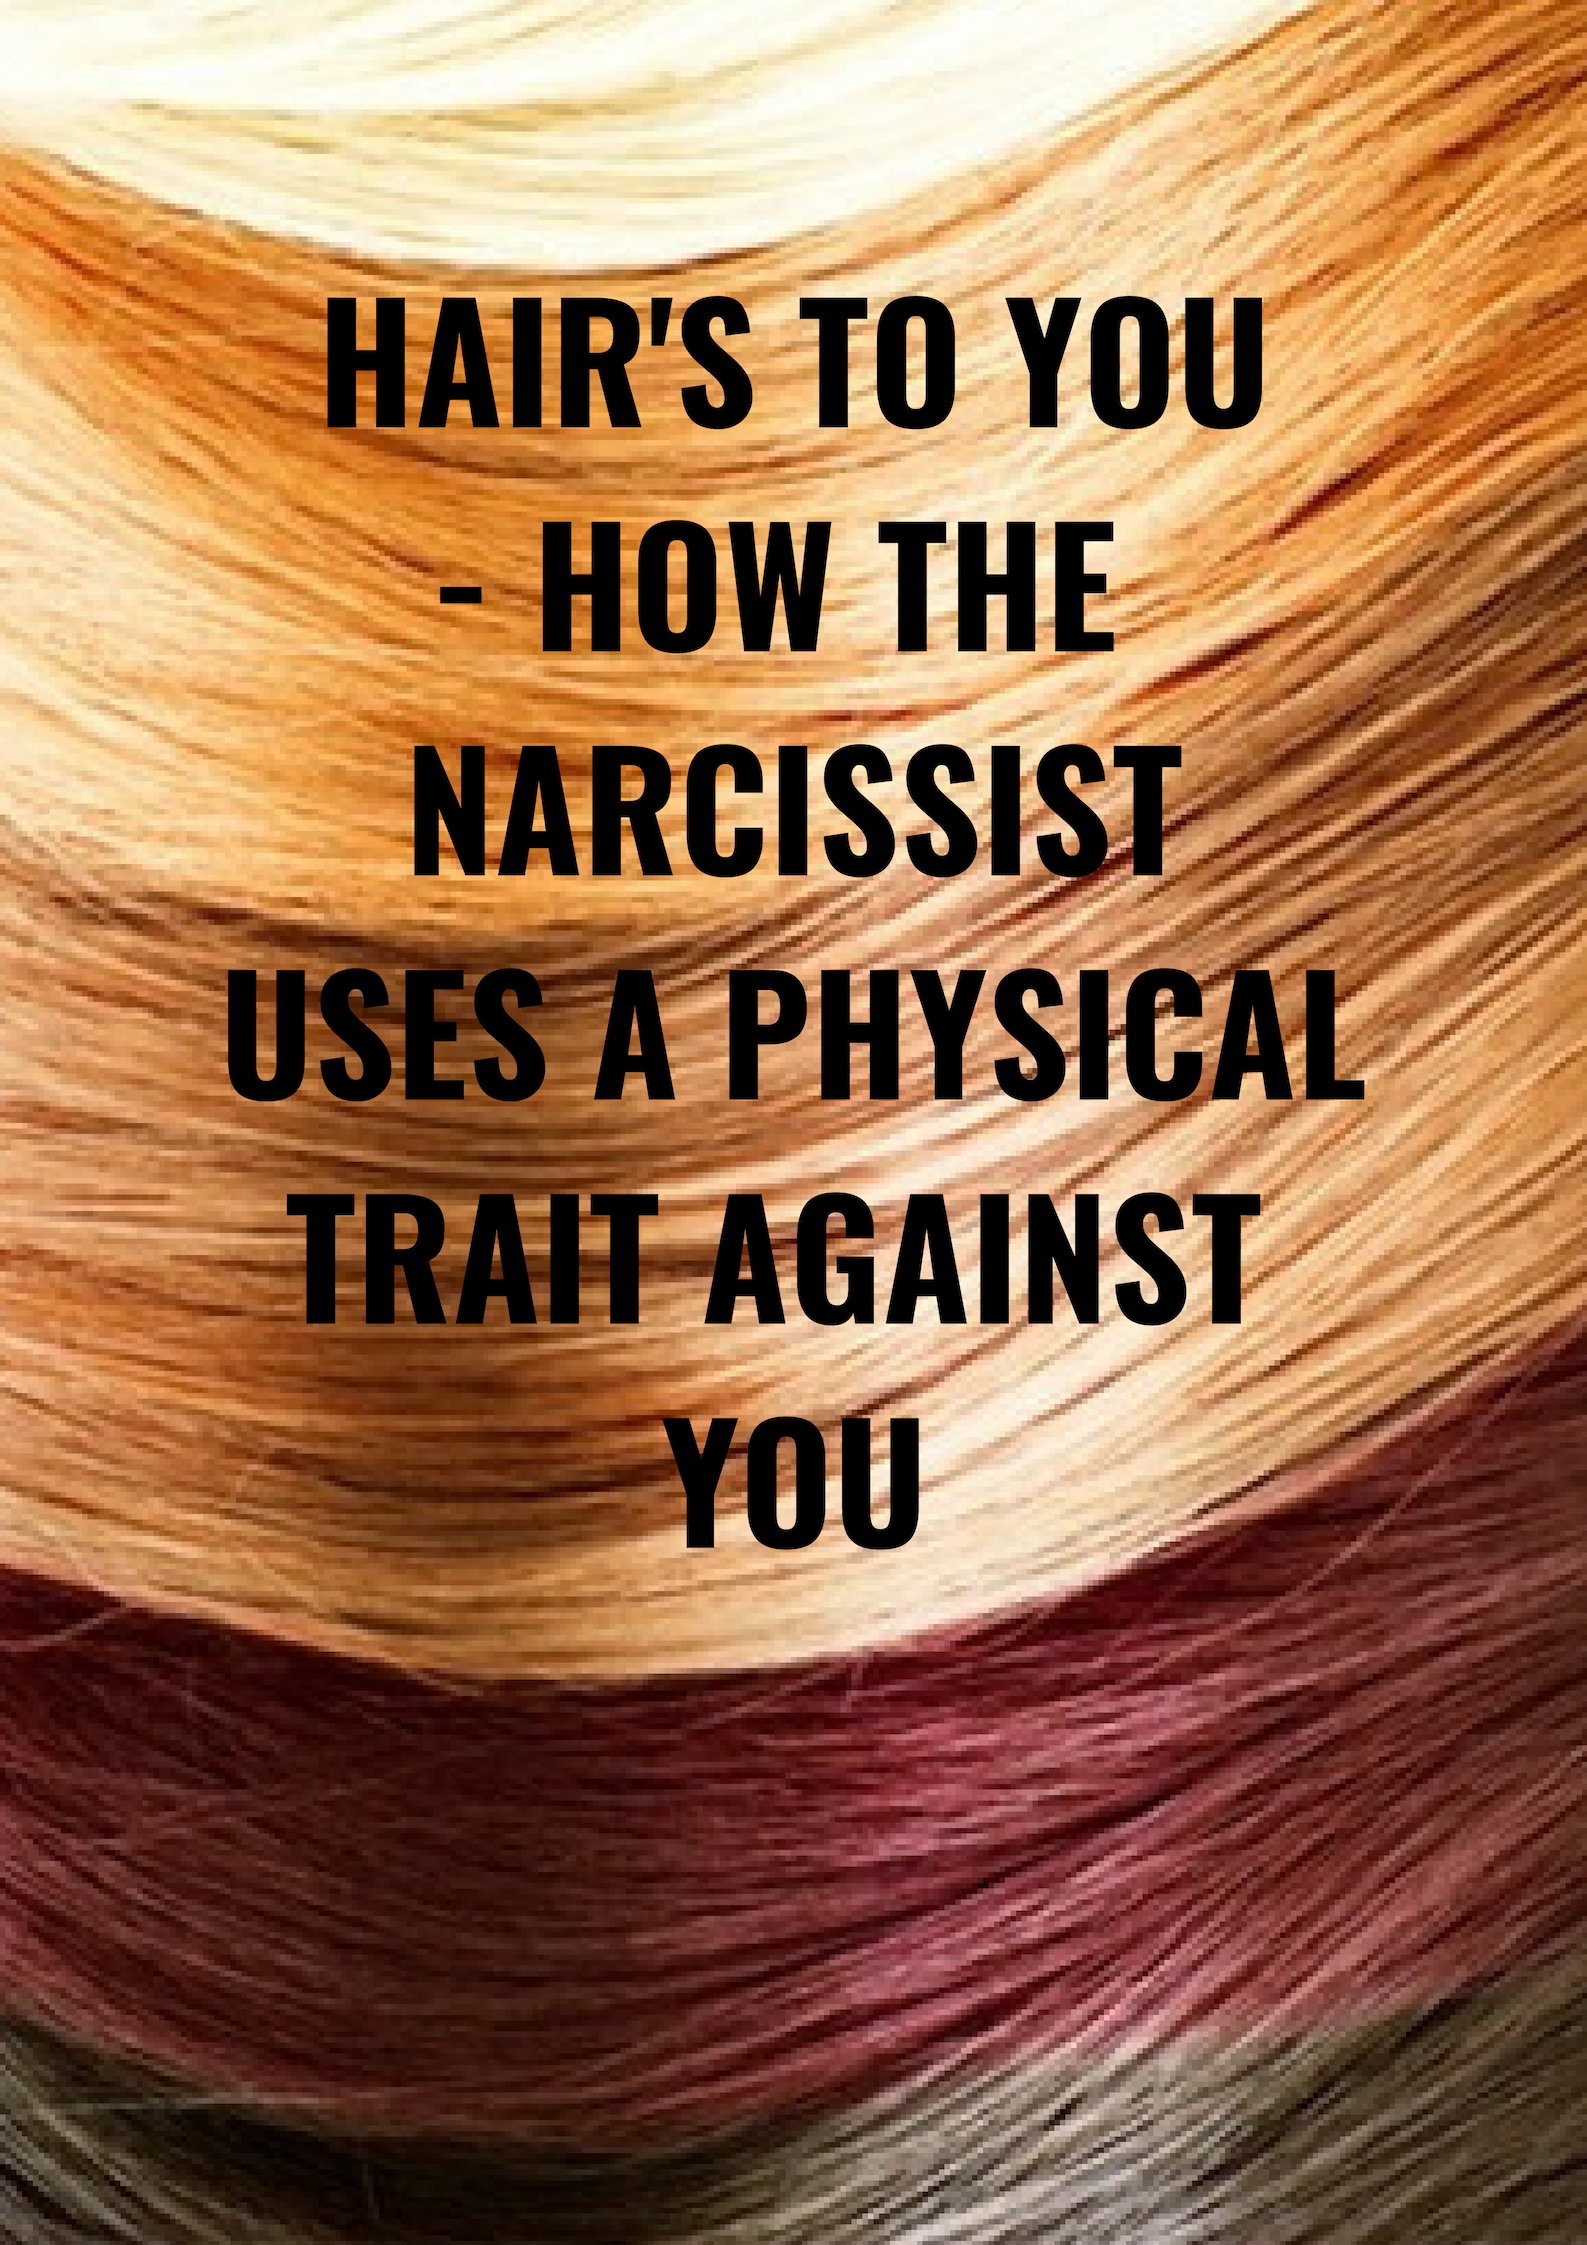 Hair's To You – How The Narcissist Uses A Physical Trait